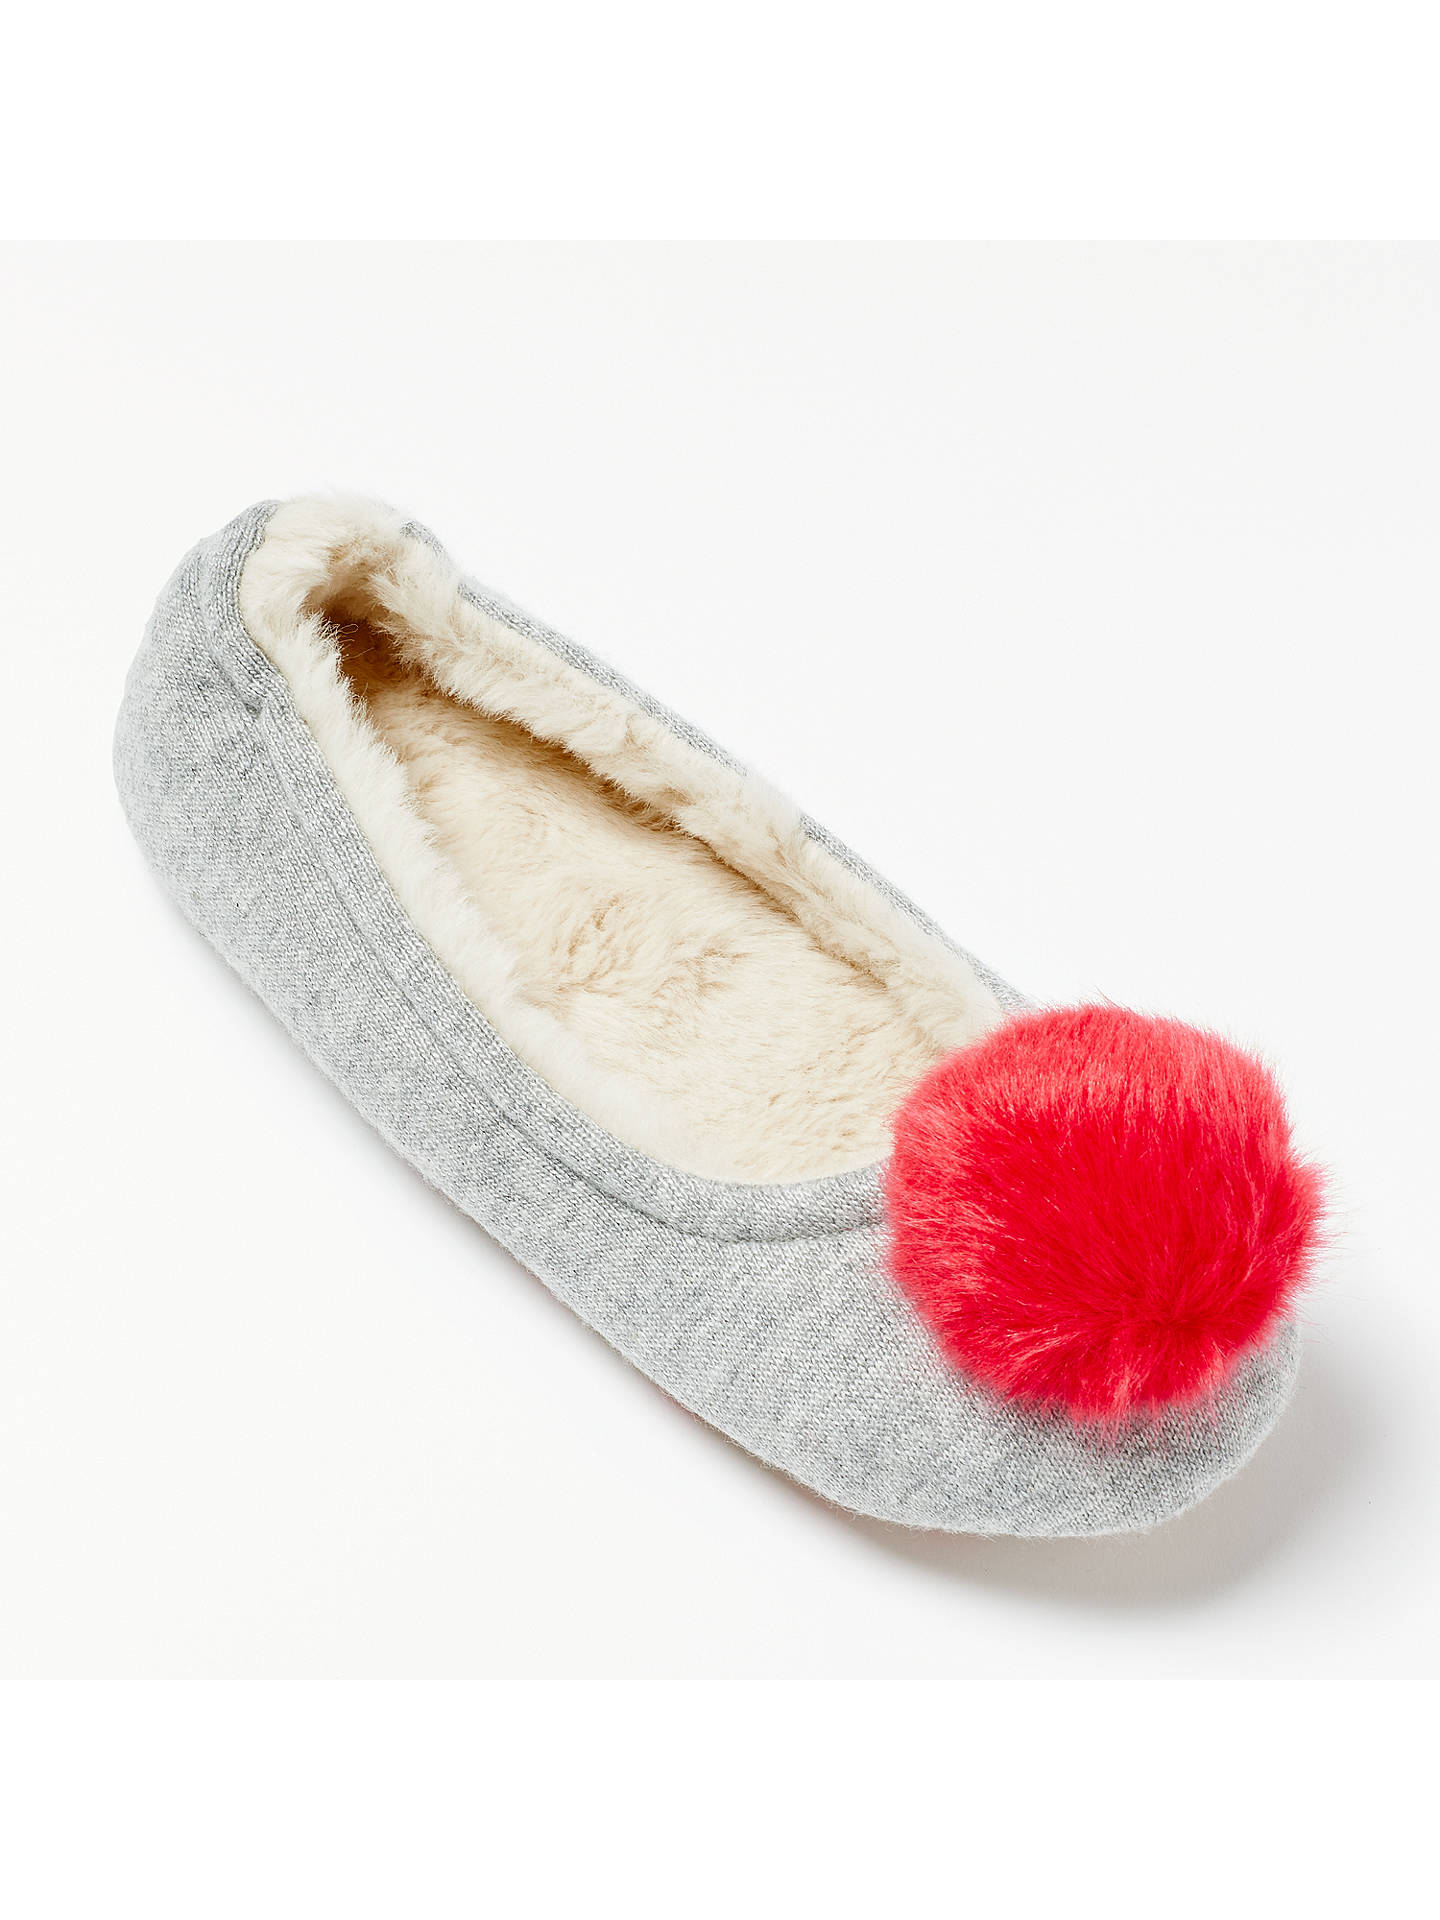 BuyBoden Knitted Pom Pom Slippers, Grey, 4 Online at johnlewis.com